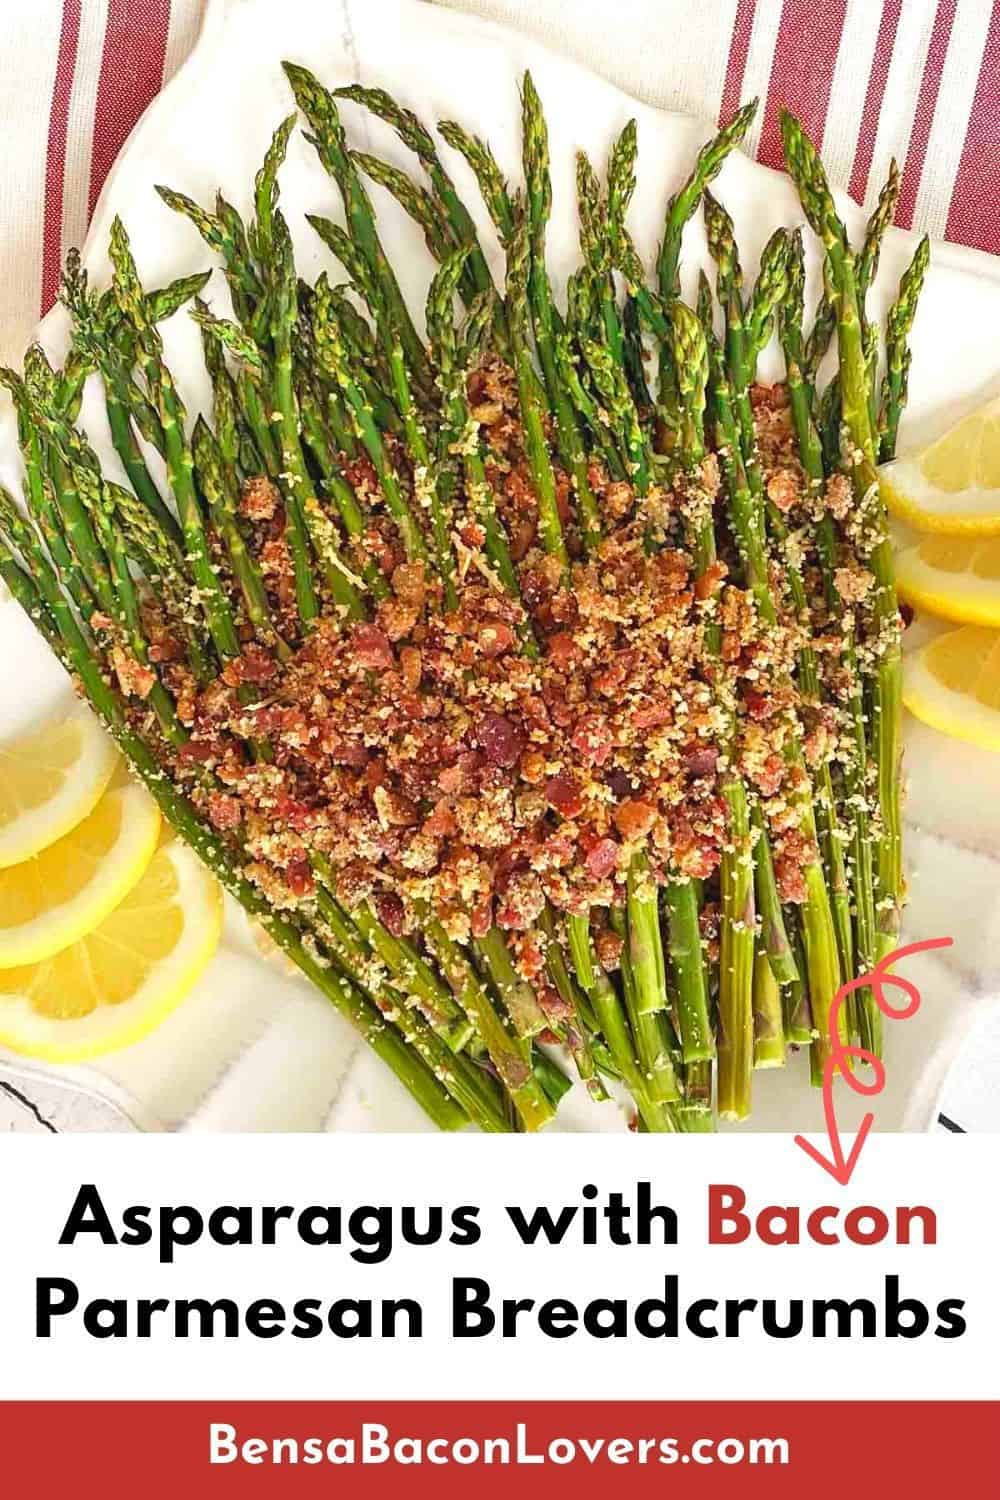 Pinterest pin with finished dish of roasted asparagus with bacon, bread crumb and Parmesan cheese topping, on a white dish with six lemon slices as garnish.